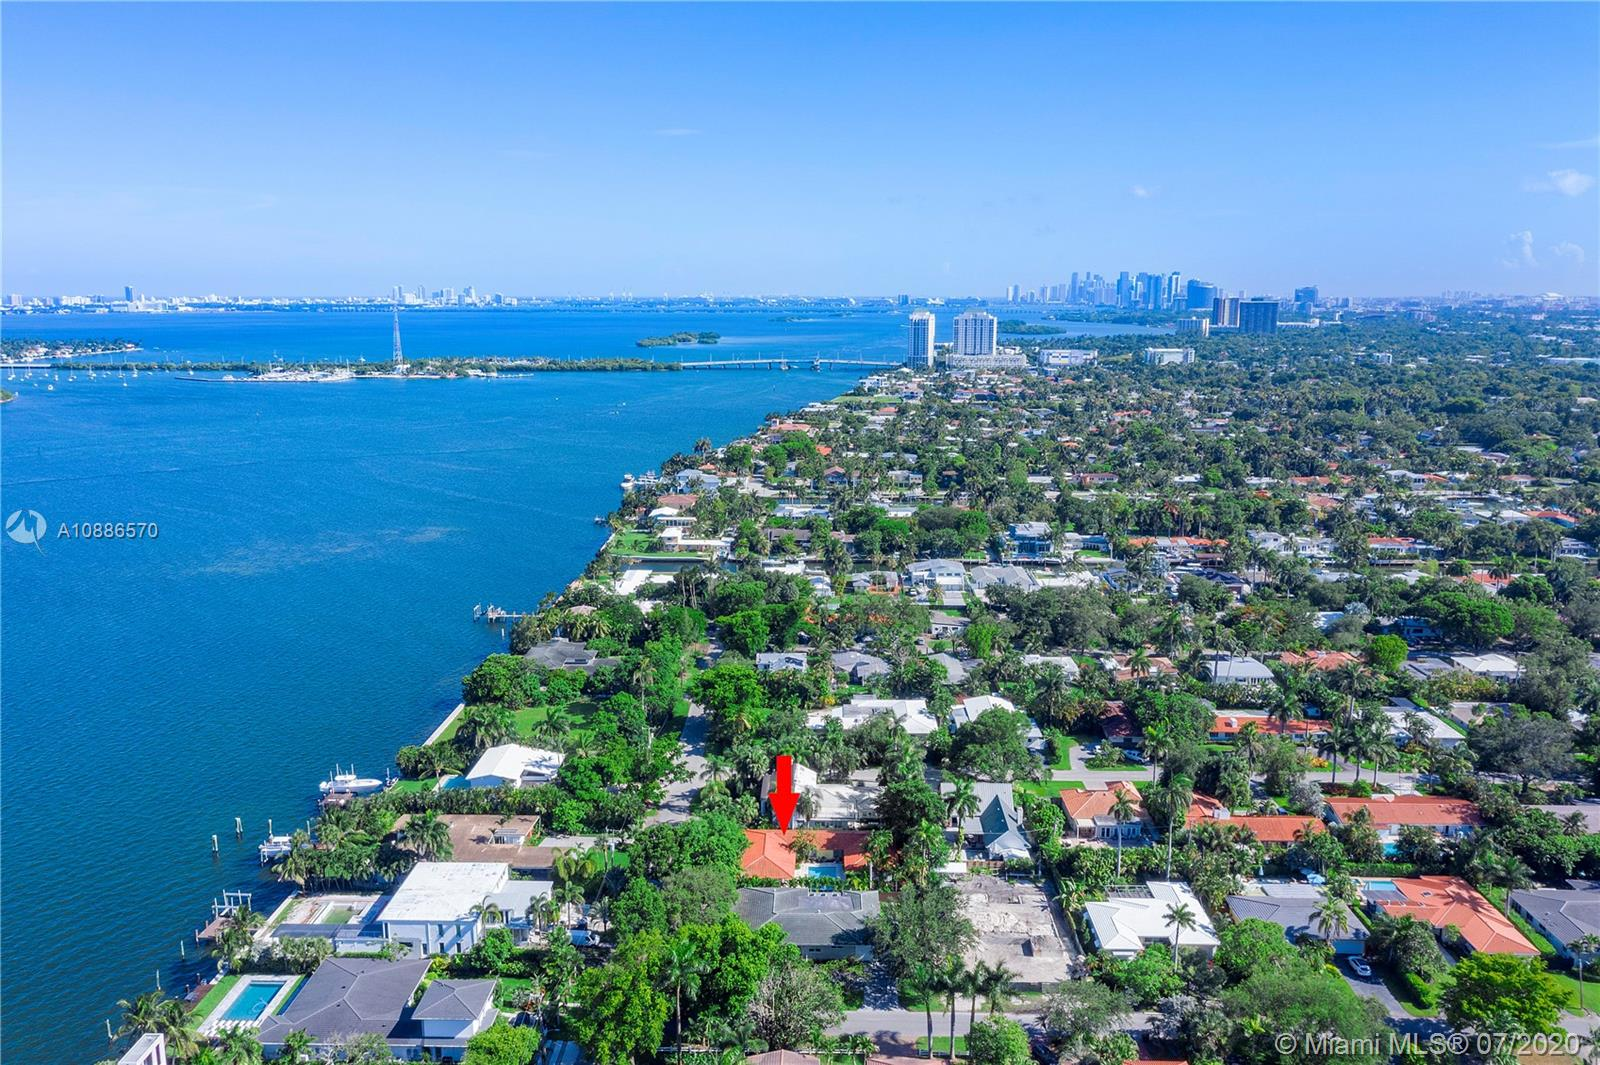 9250 N Bayshore Dr, Miami Shores, Florida 33138, 3 Bedrooms Bedrooms, ,3 BathroomsBathrooms,Residential,For Sale,9250 N Bayshore Dr,A10886570